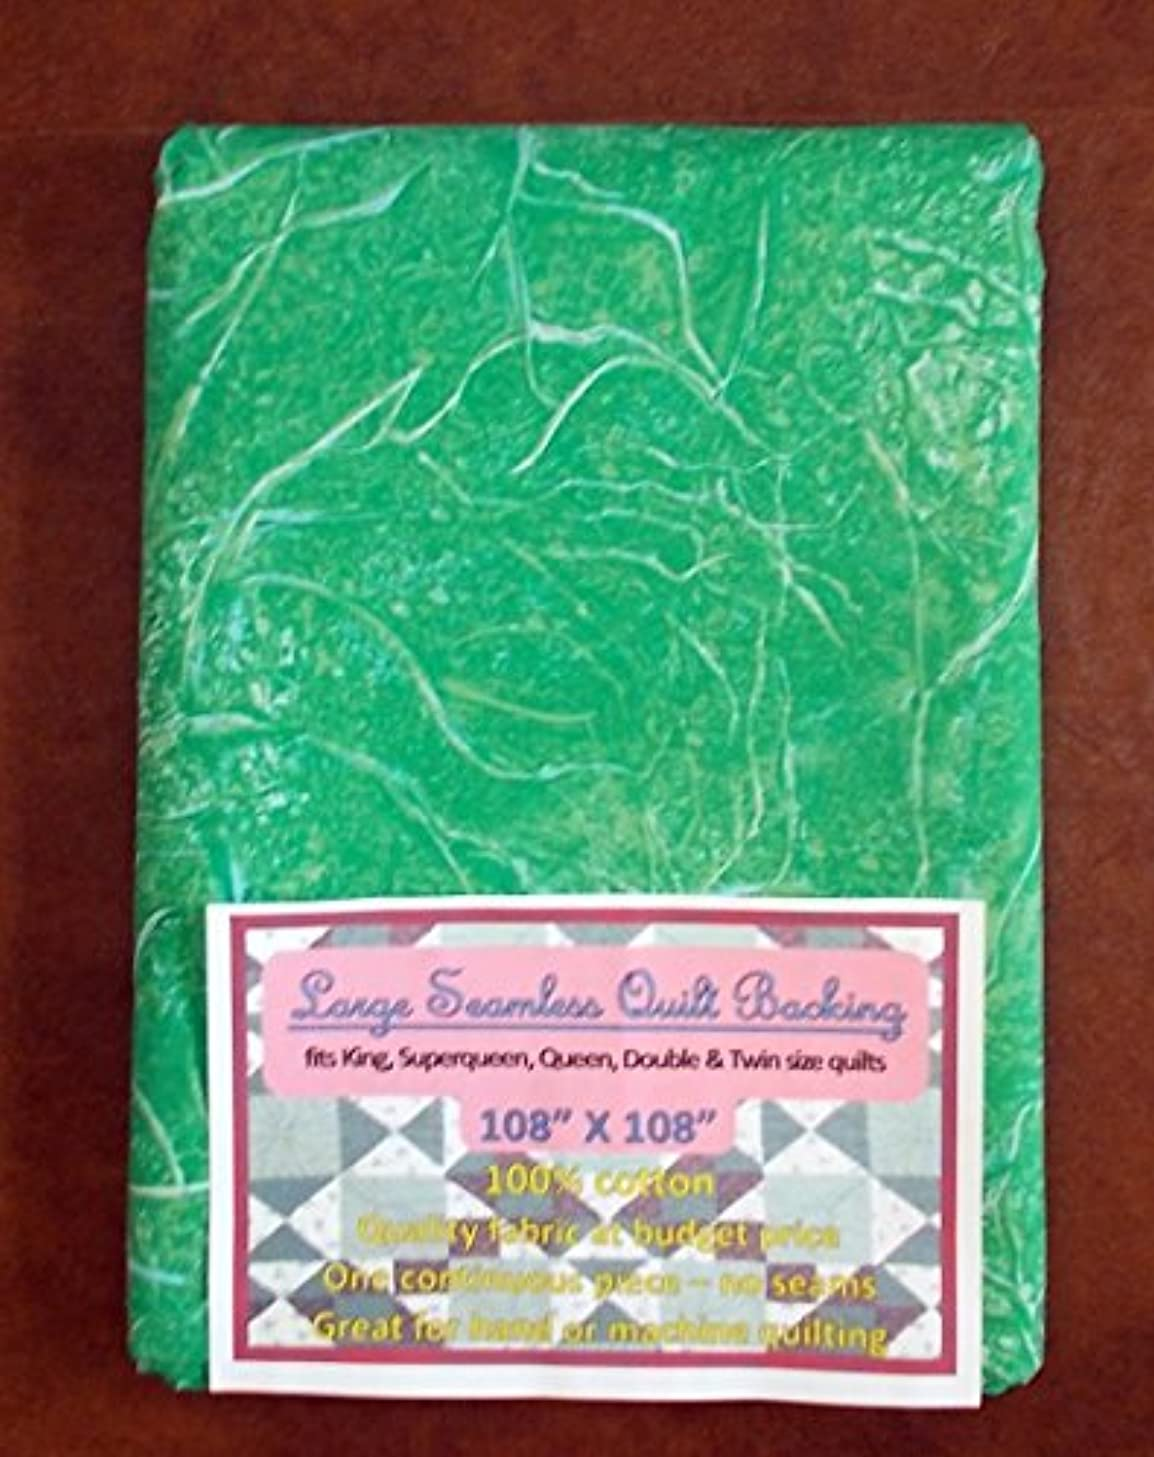 Quilt Backing, Large, Seamless, Green, C49378-608